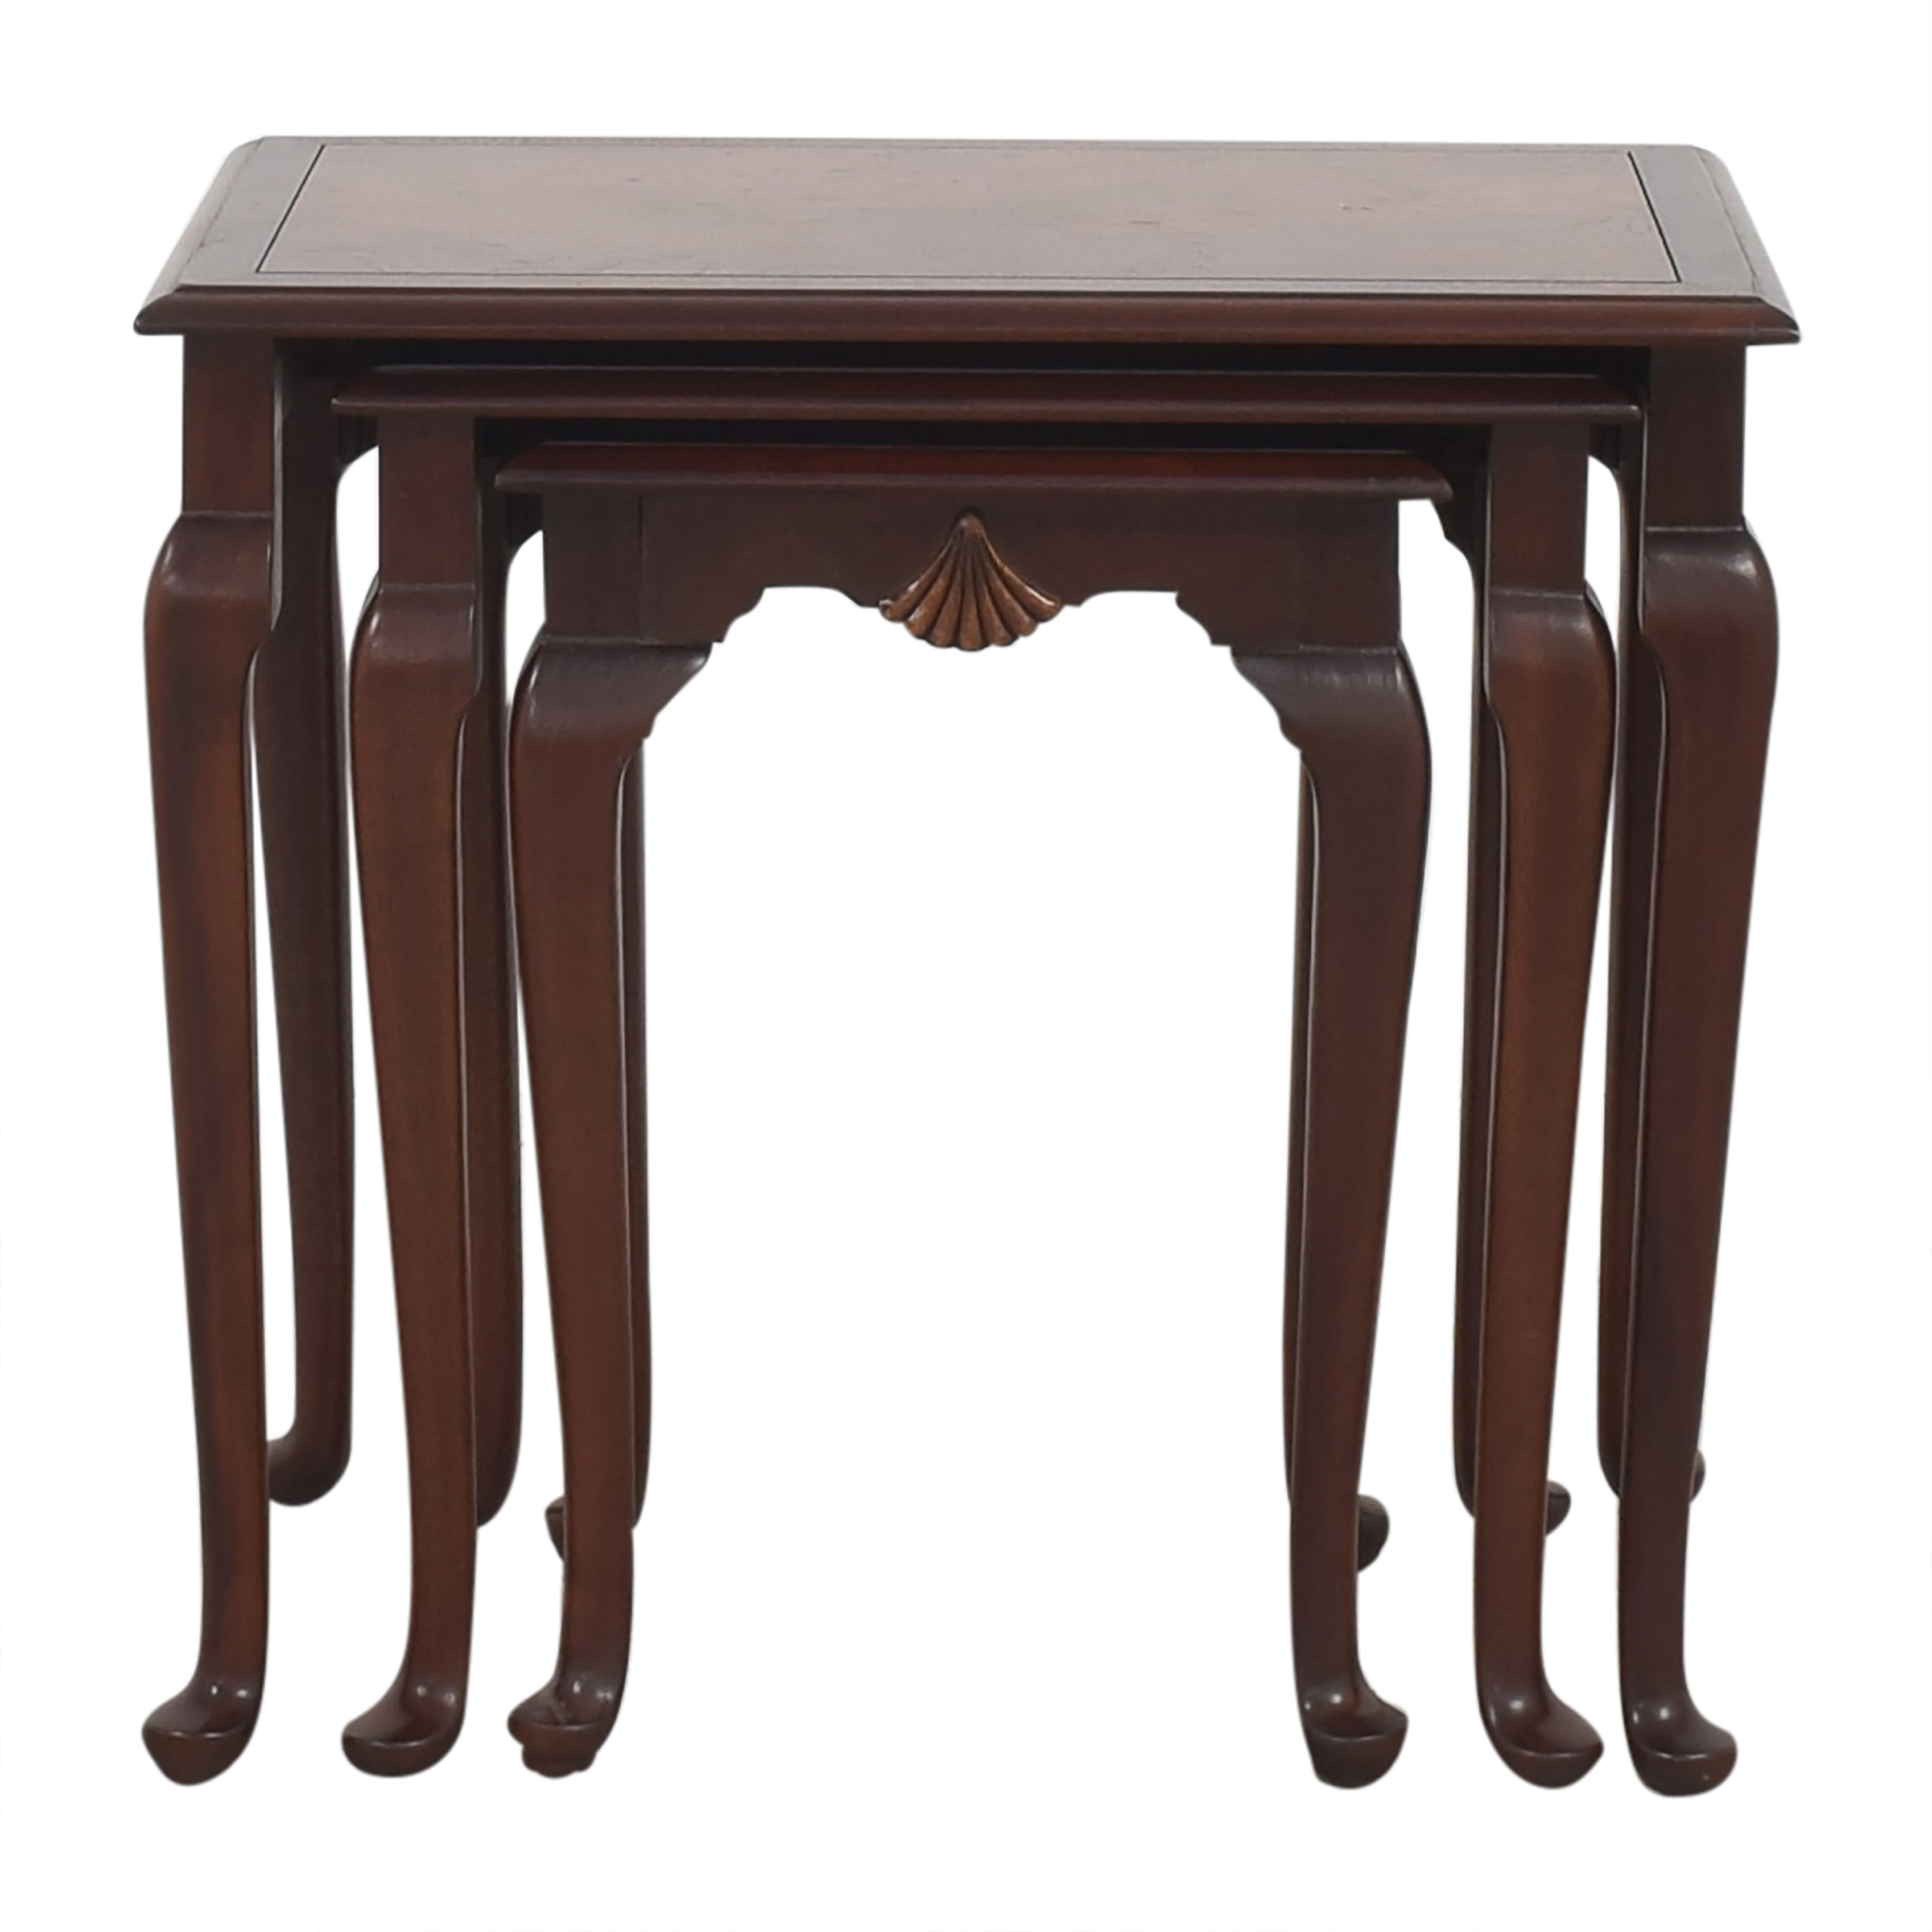 Hekman Furniture Heckman Queen Anne Style Nest of Tables pa